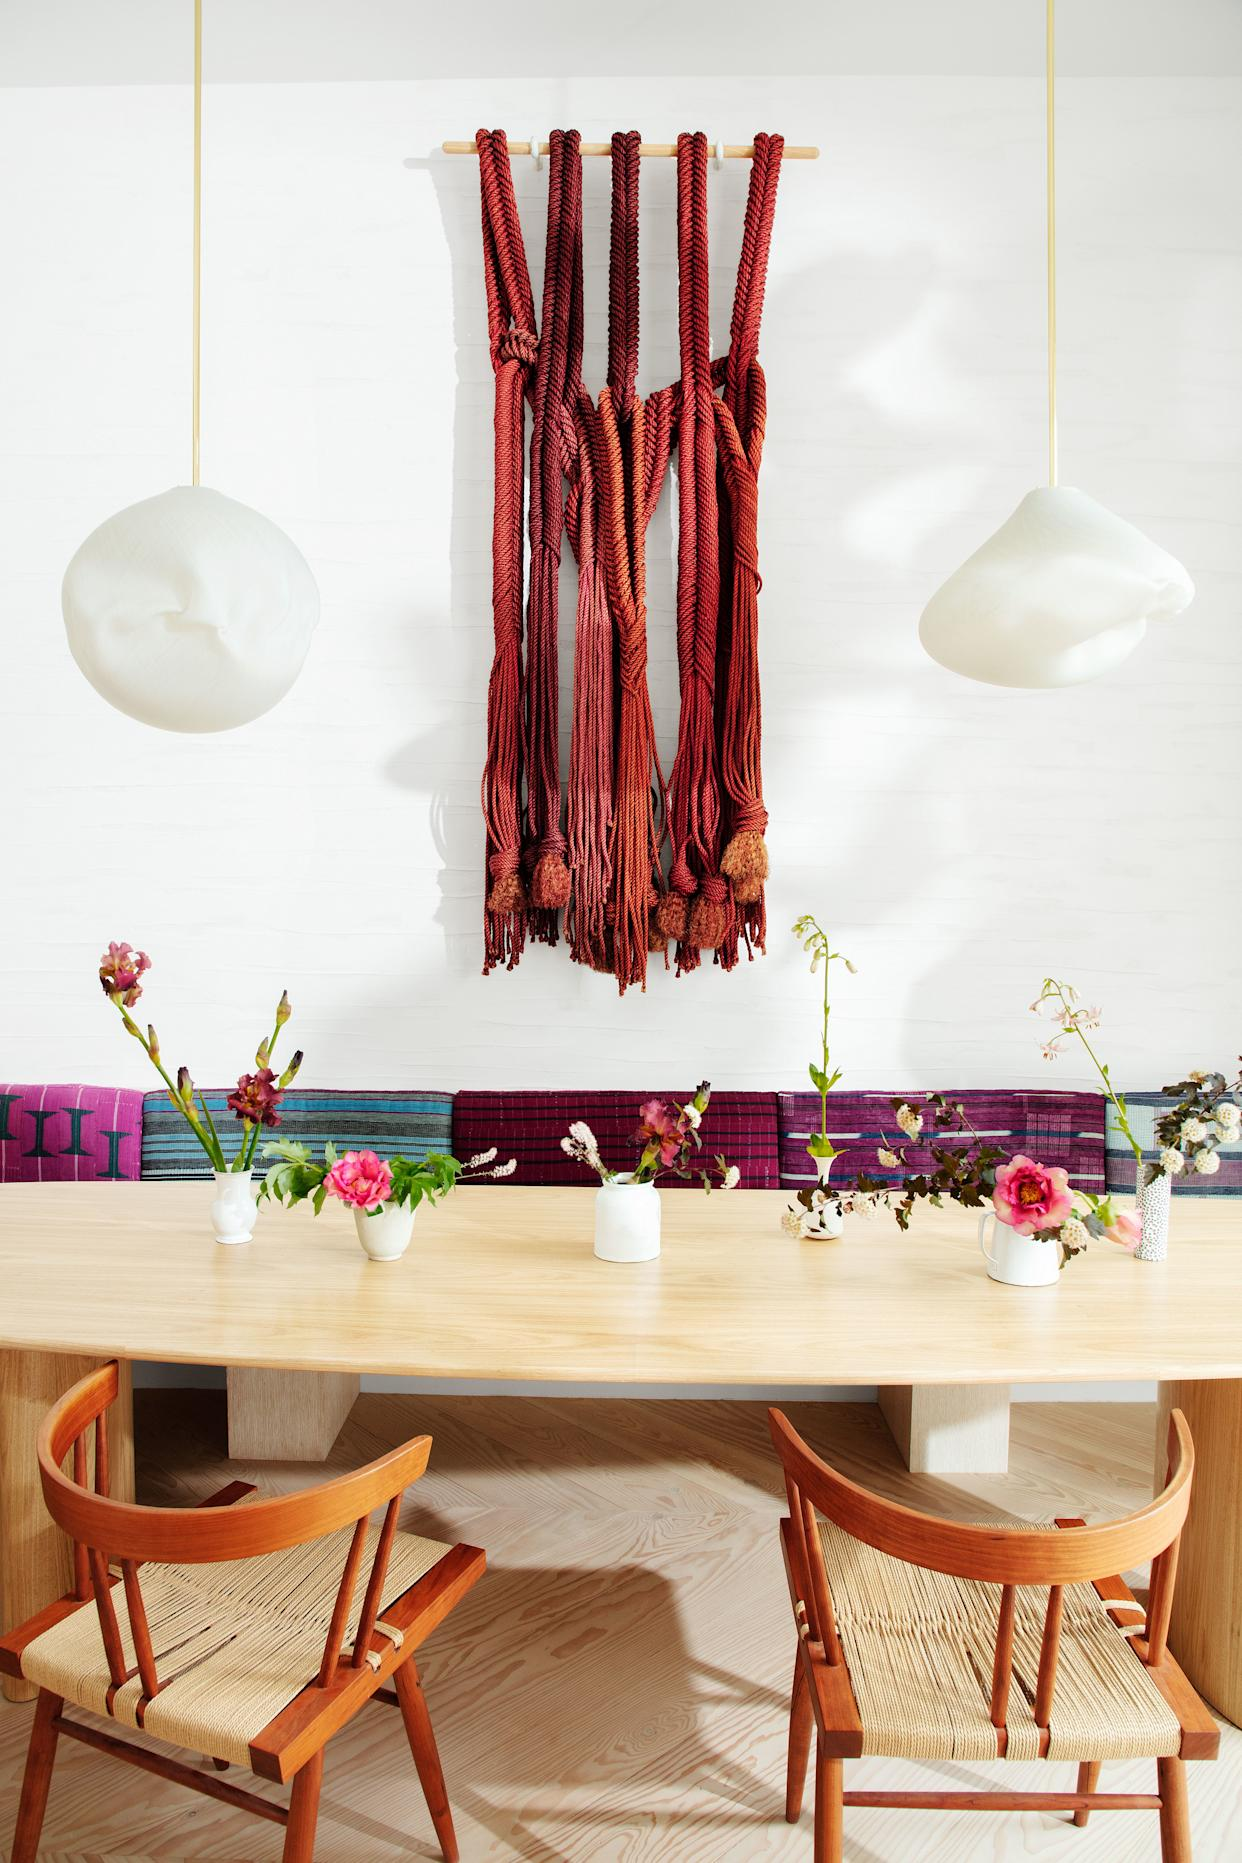 """<div class=""""caption""""> A textile work by Françoise Grossen is displayed in the dining area. </div>"""